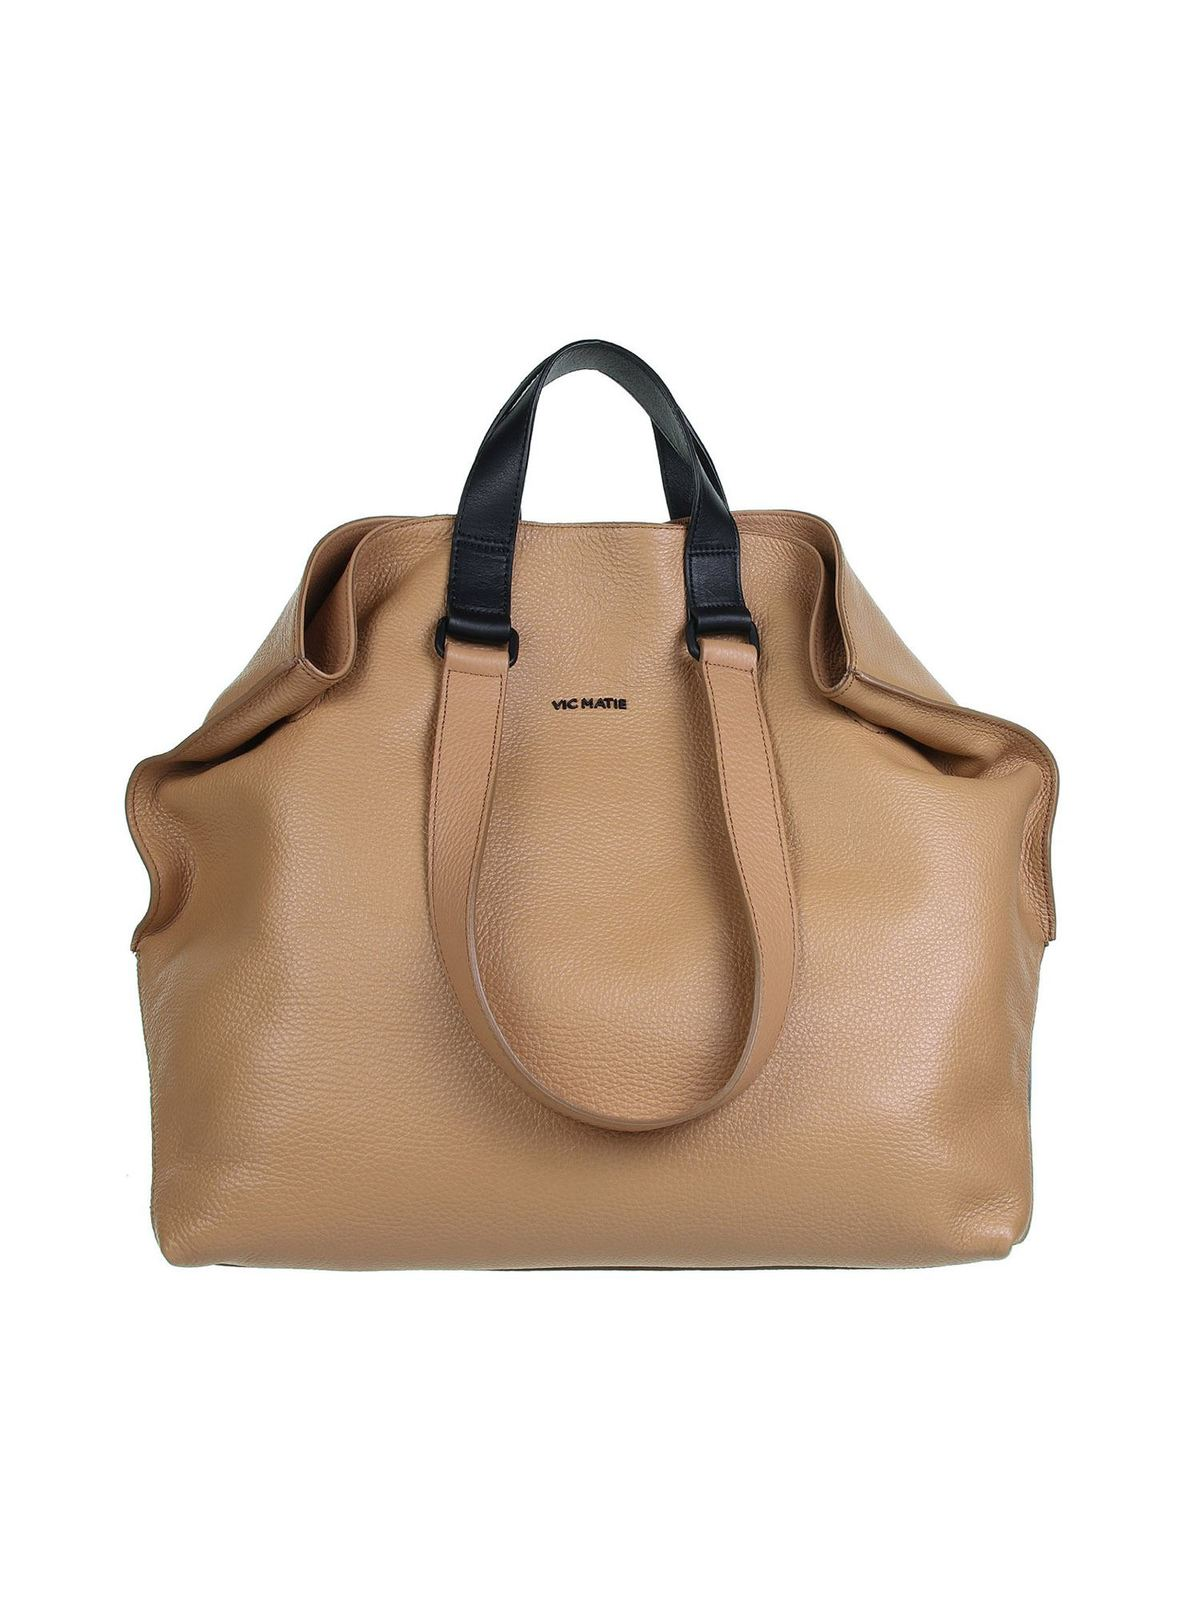 Vic Matie Leathers AGATHE TOTE BAG IN BROWN